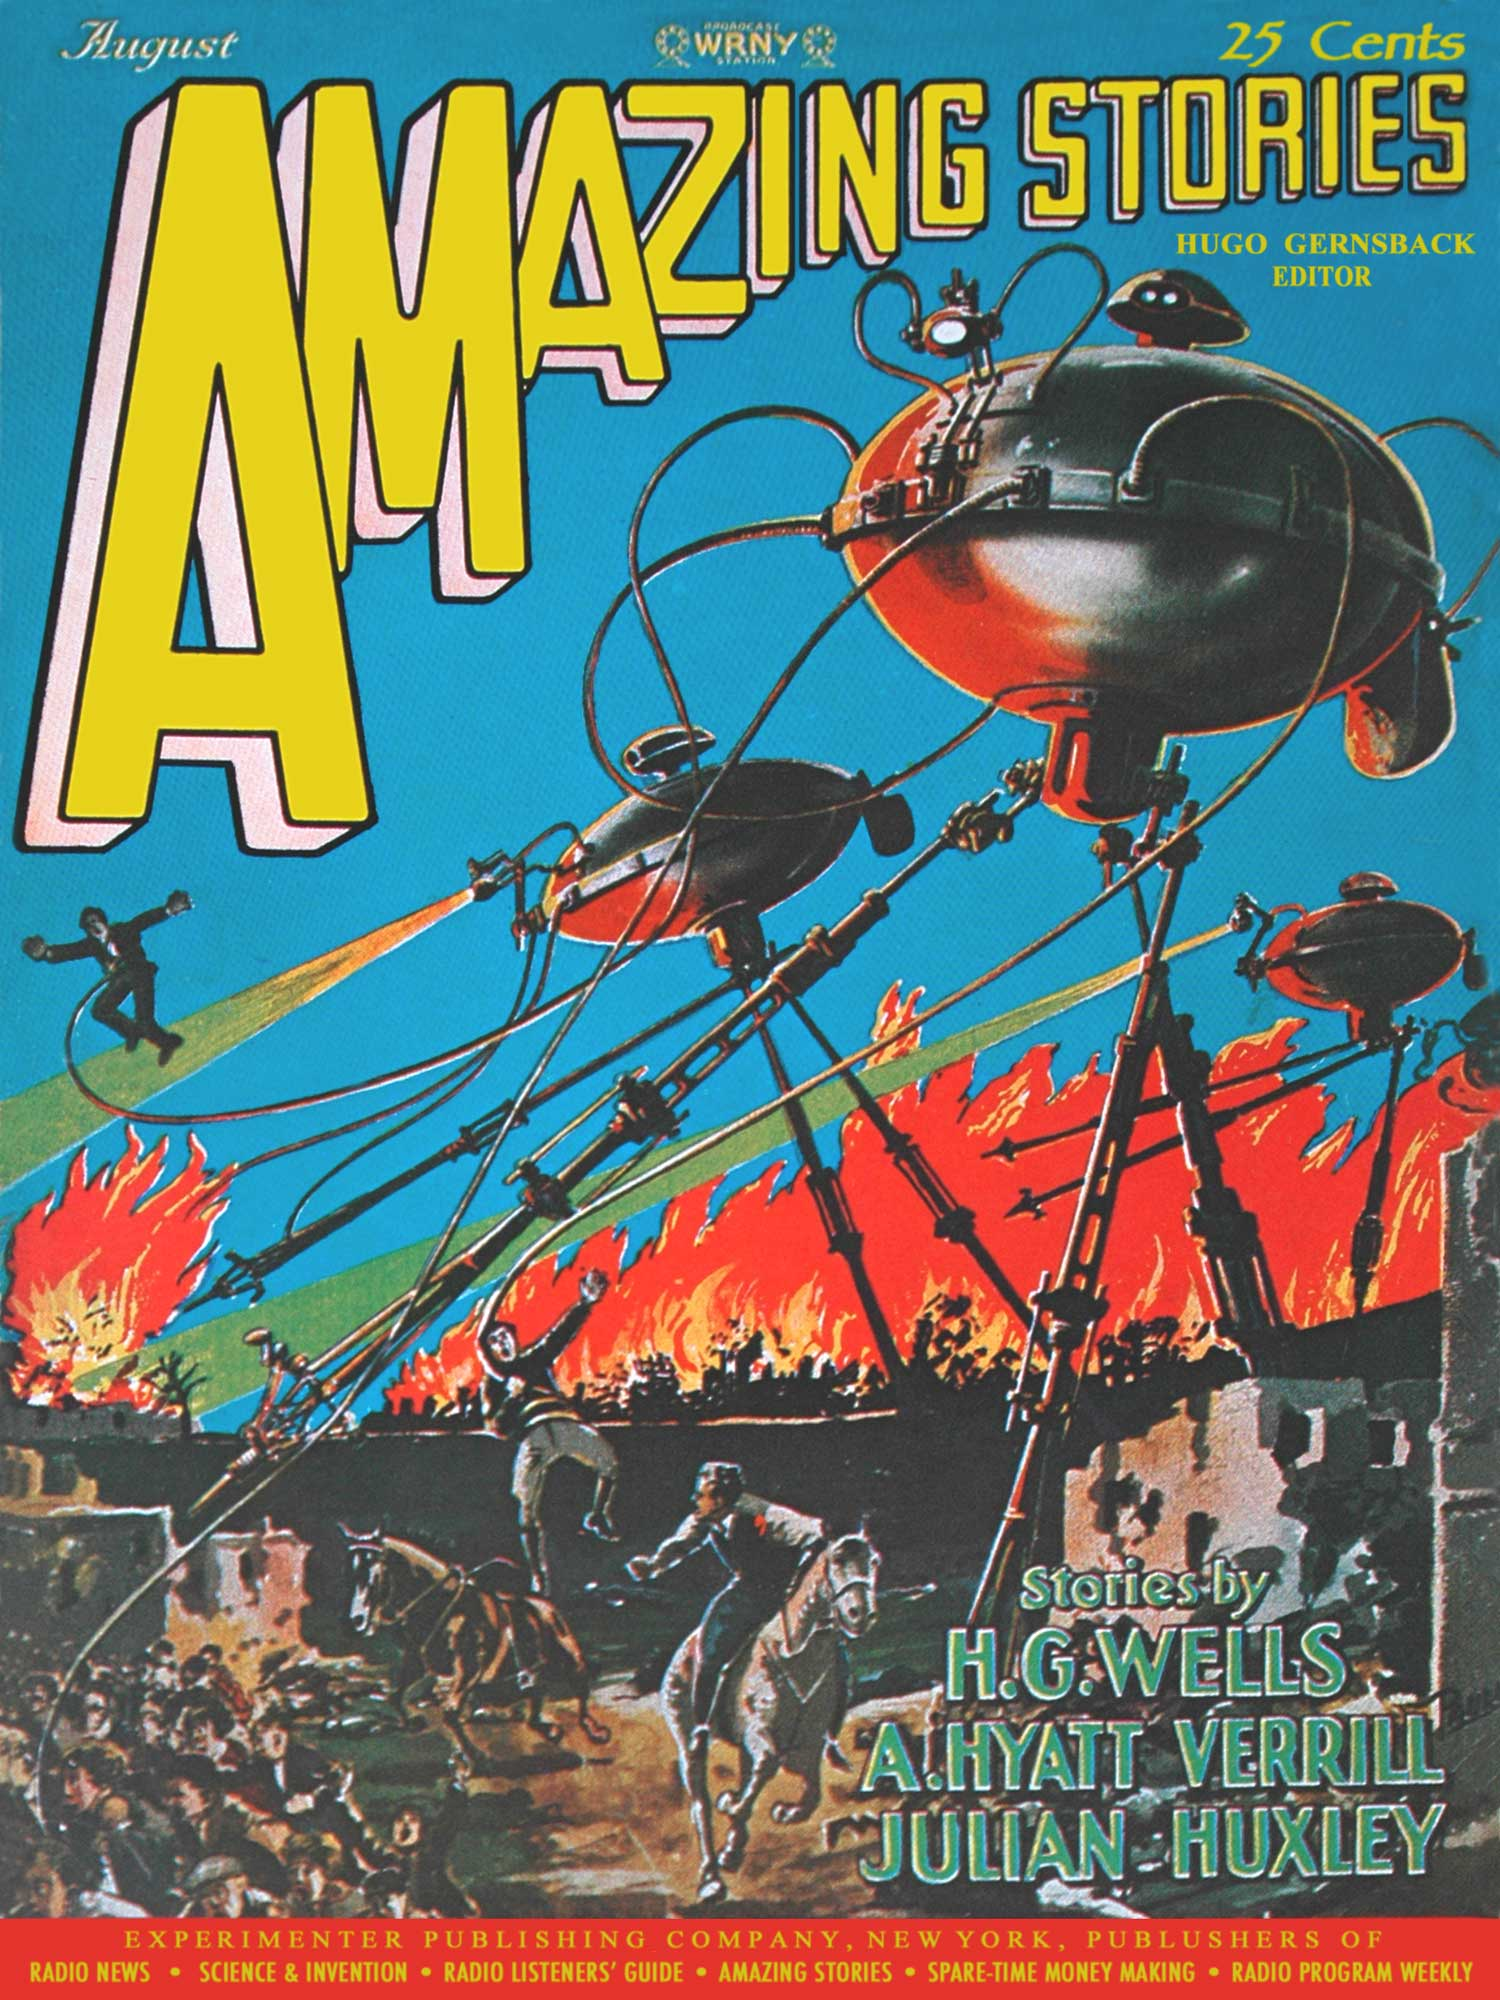 Amazing Stories Volume 21 Number 06: Frank R. Paul (1) The Gernsback Years